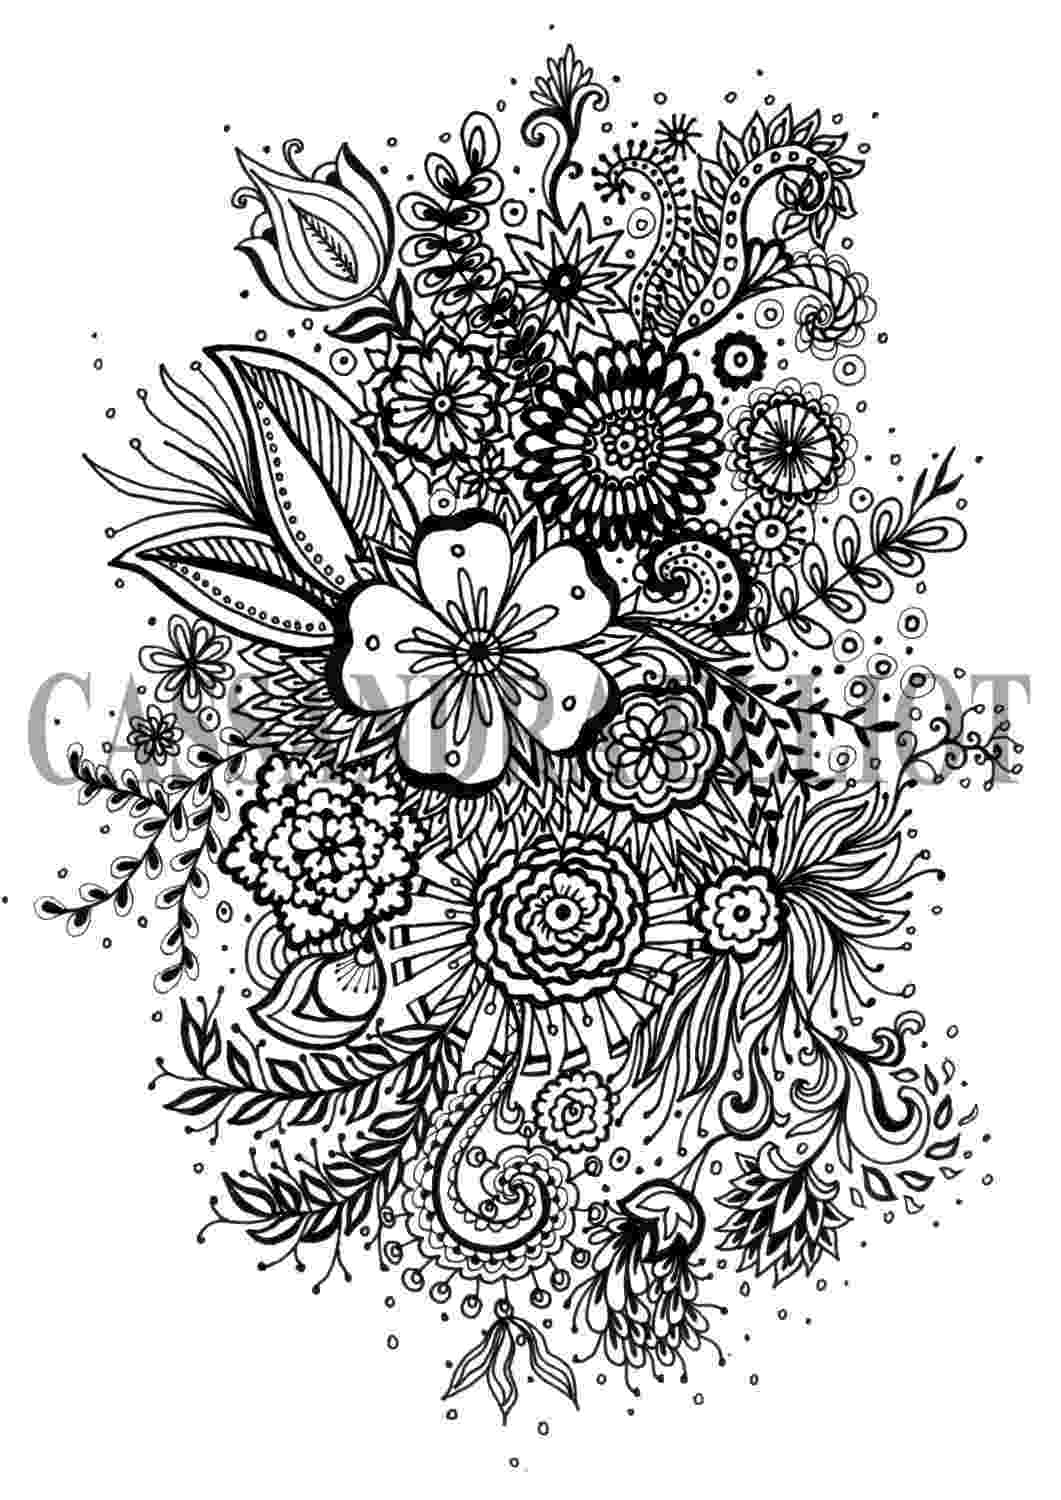 coloring patterns flowers hearts and flowers pattern coloring page free printable coloring patterns flowers